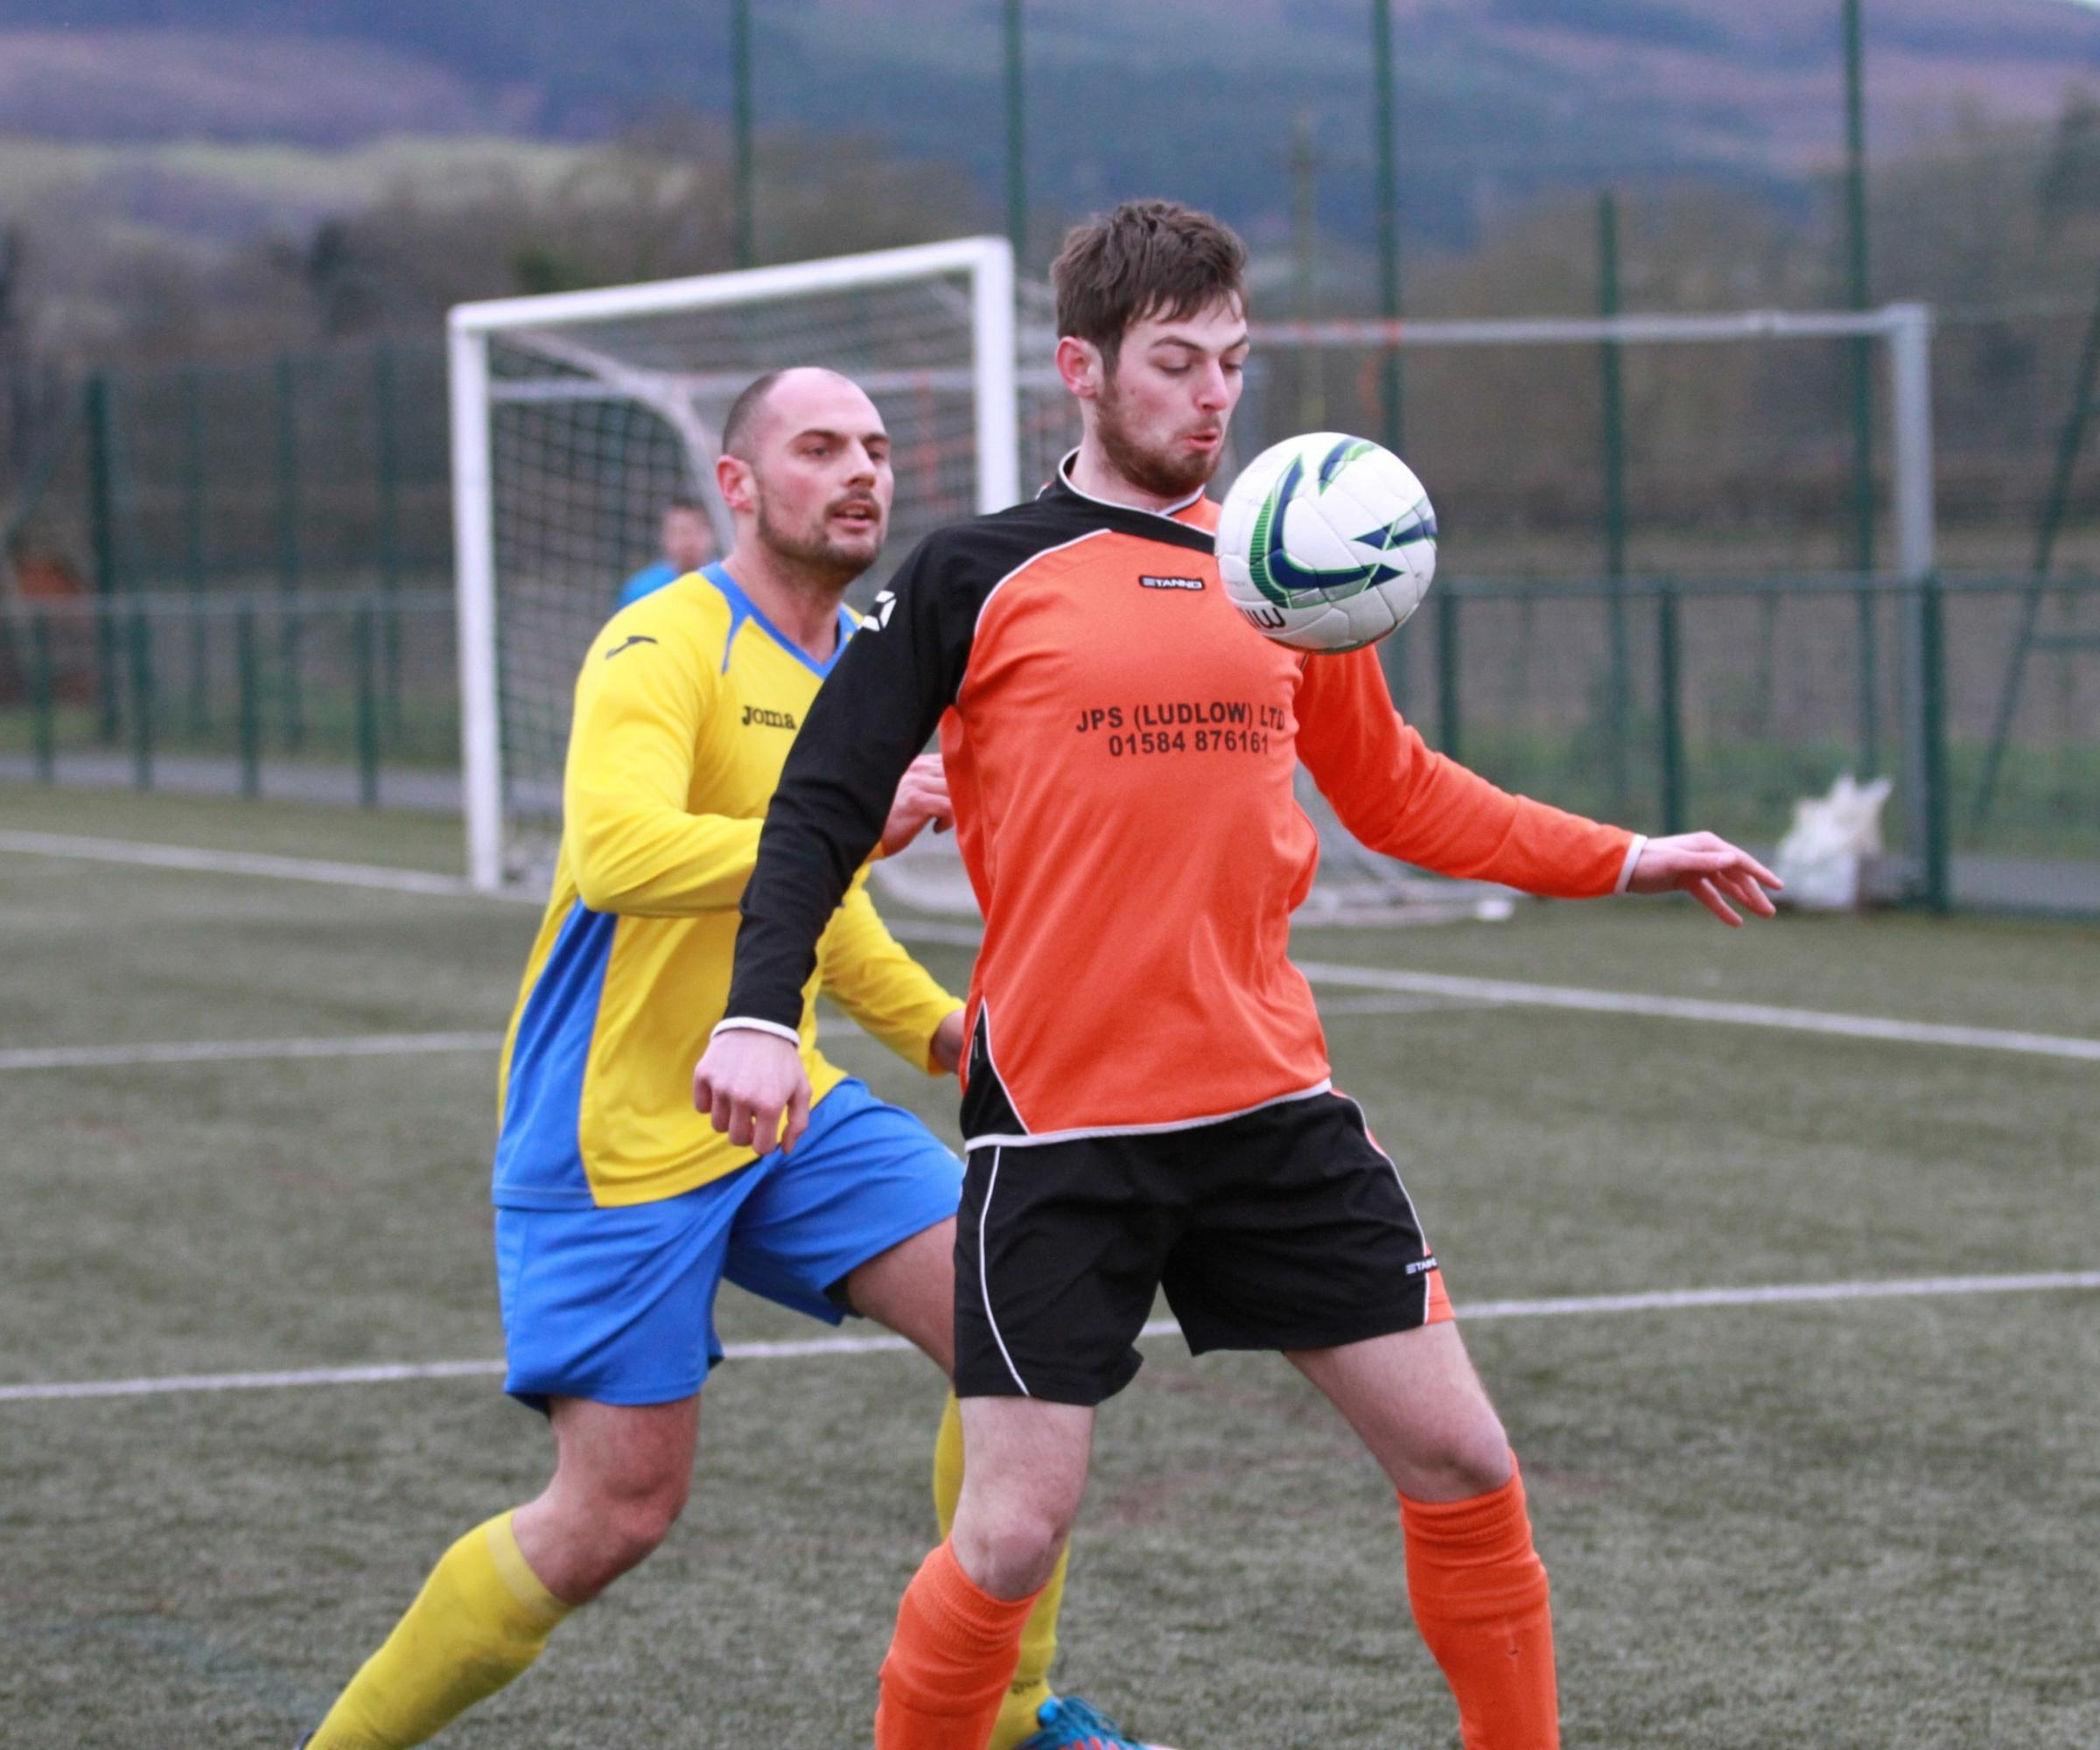 Kieron Roche saves penalty in Ludlow Town Colts' 4-2 cup success against Claverley